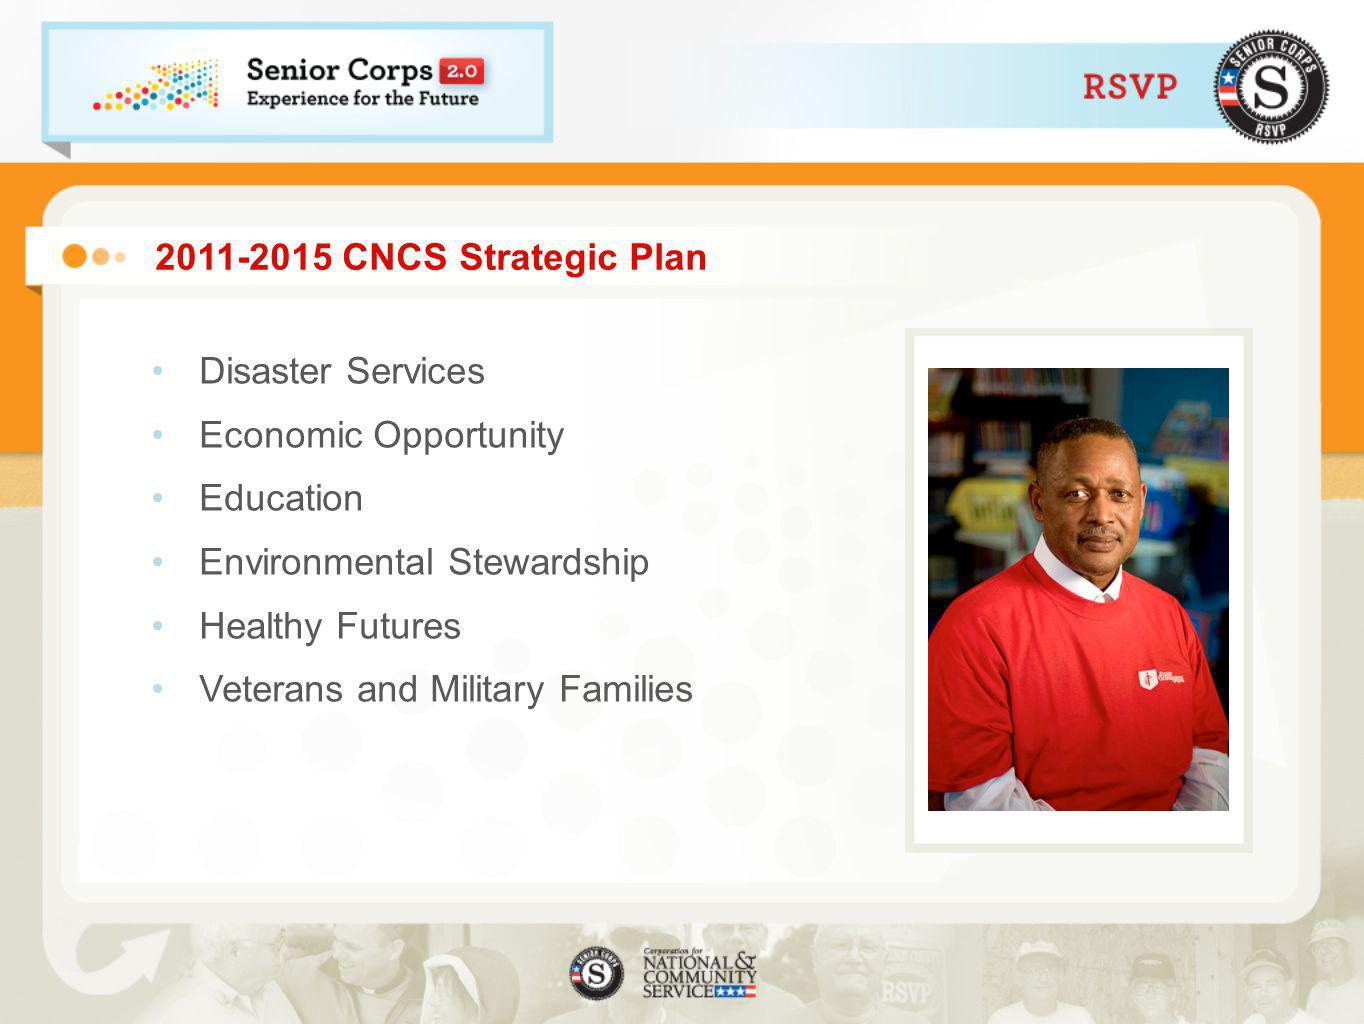 2011-2015 CNCS Strategic Plan Disaster Services Economic Opportunity Education Environmental Stewardship Healthy Futures Veterans and Military Families